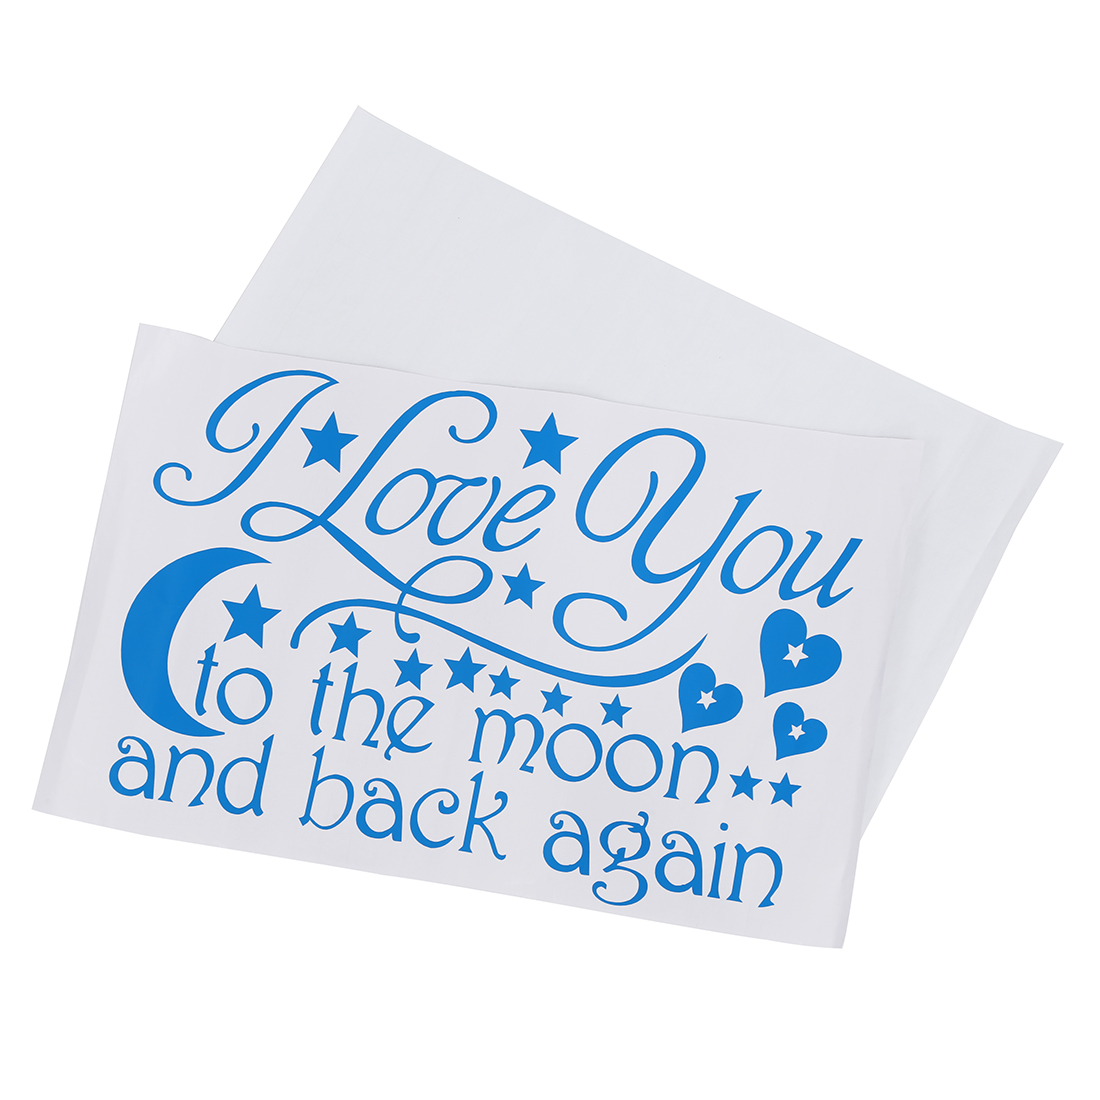 Color art words - I Love You To The Moon Back Again Star Heart Art Words Quotes Vinyl Wall Decals